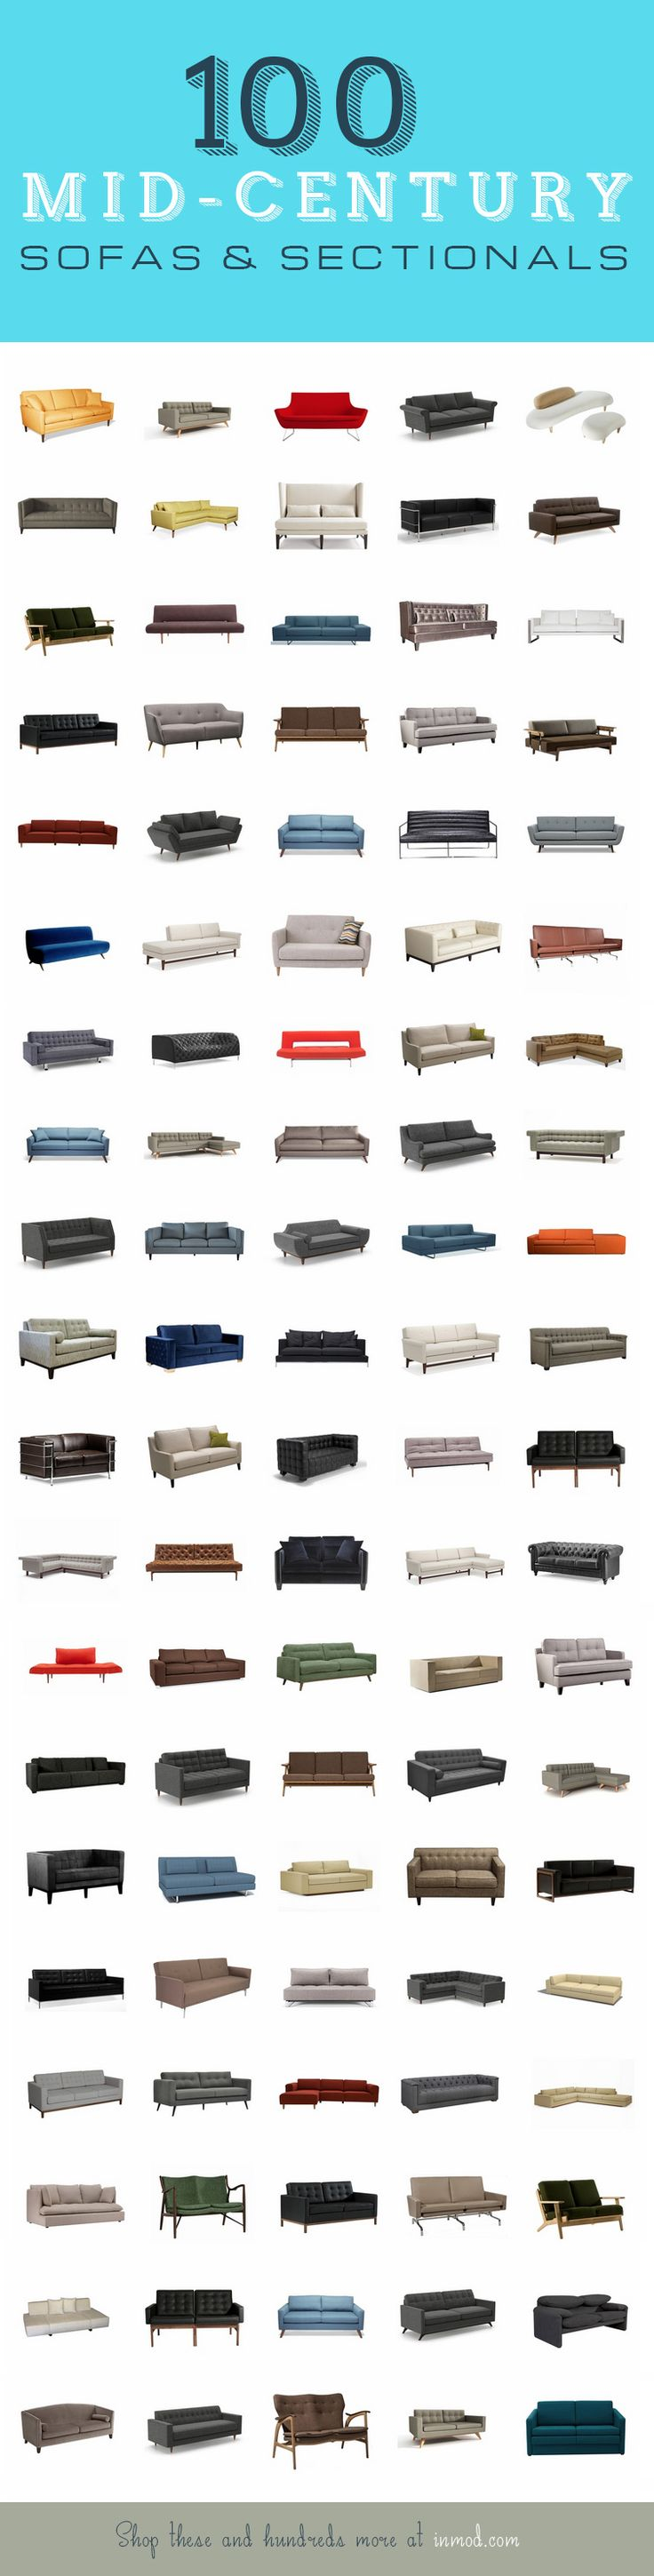 100 of our favorite Mid-Century / Modern Sofas & Sectionals from Inmod. With hundreds more, many of them customizable & totally affordable, finding that perfect mid-century conversation or accent piece has never been easier! #midcentury #sofas #modern